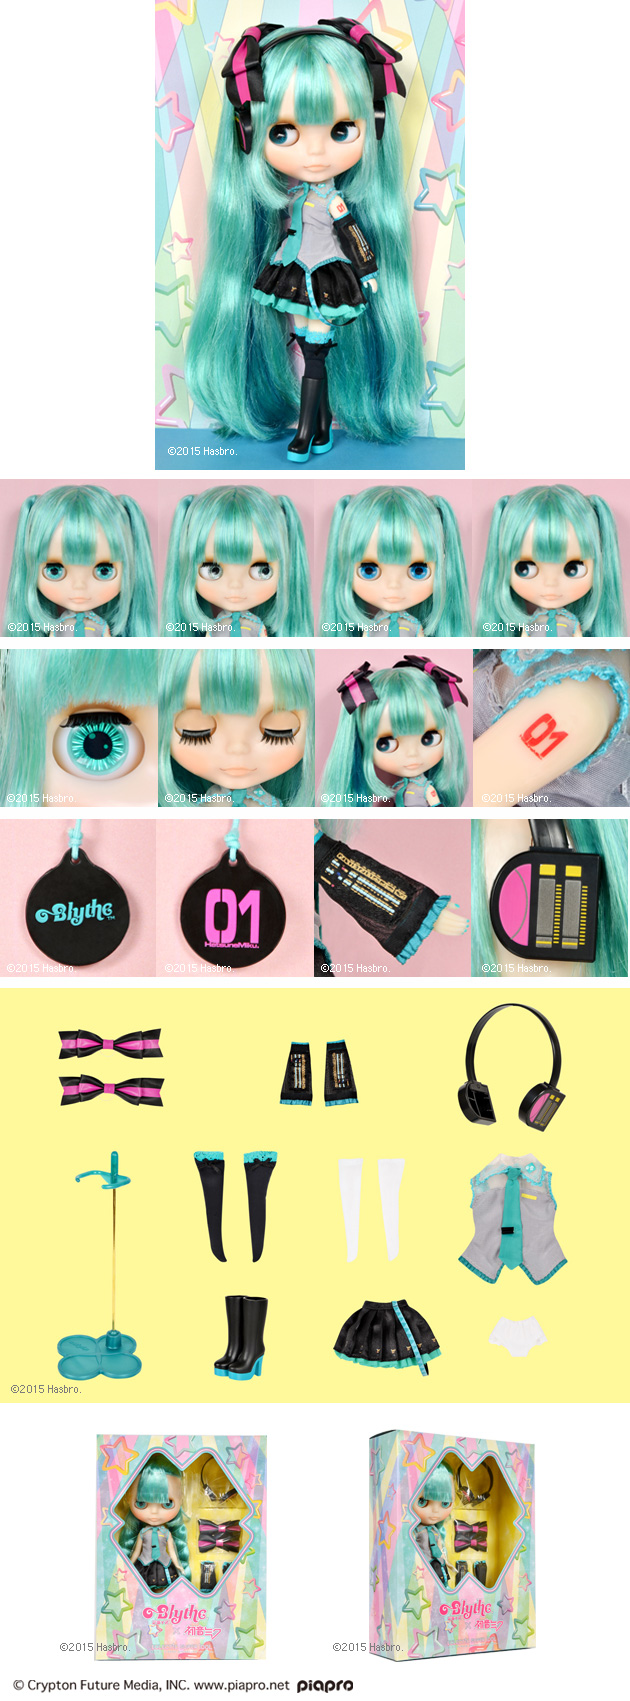 Blythe, hatsune miku, japanese, idol, limited edition